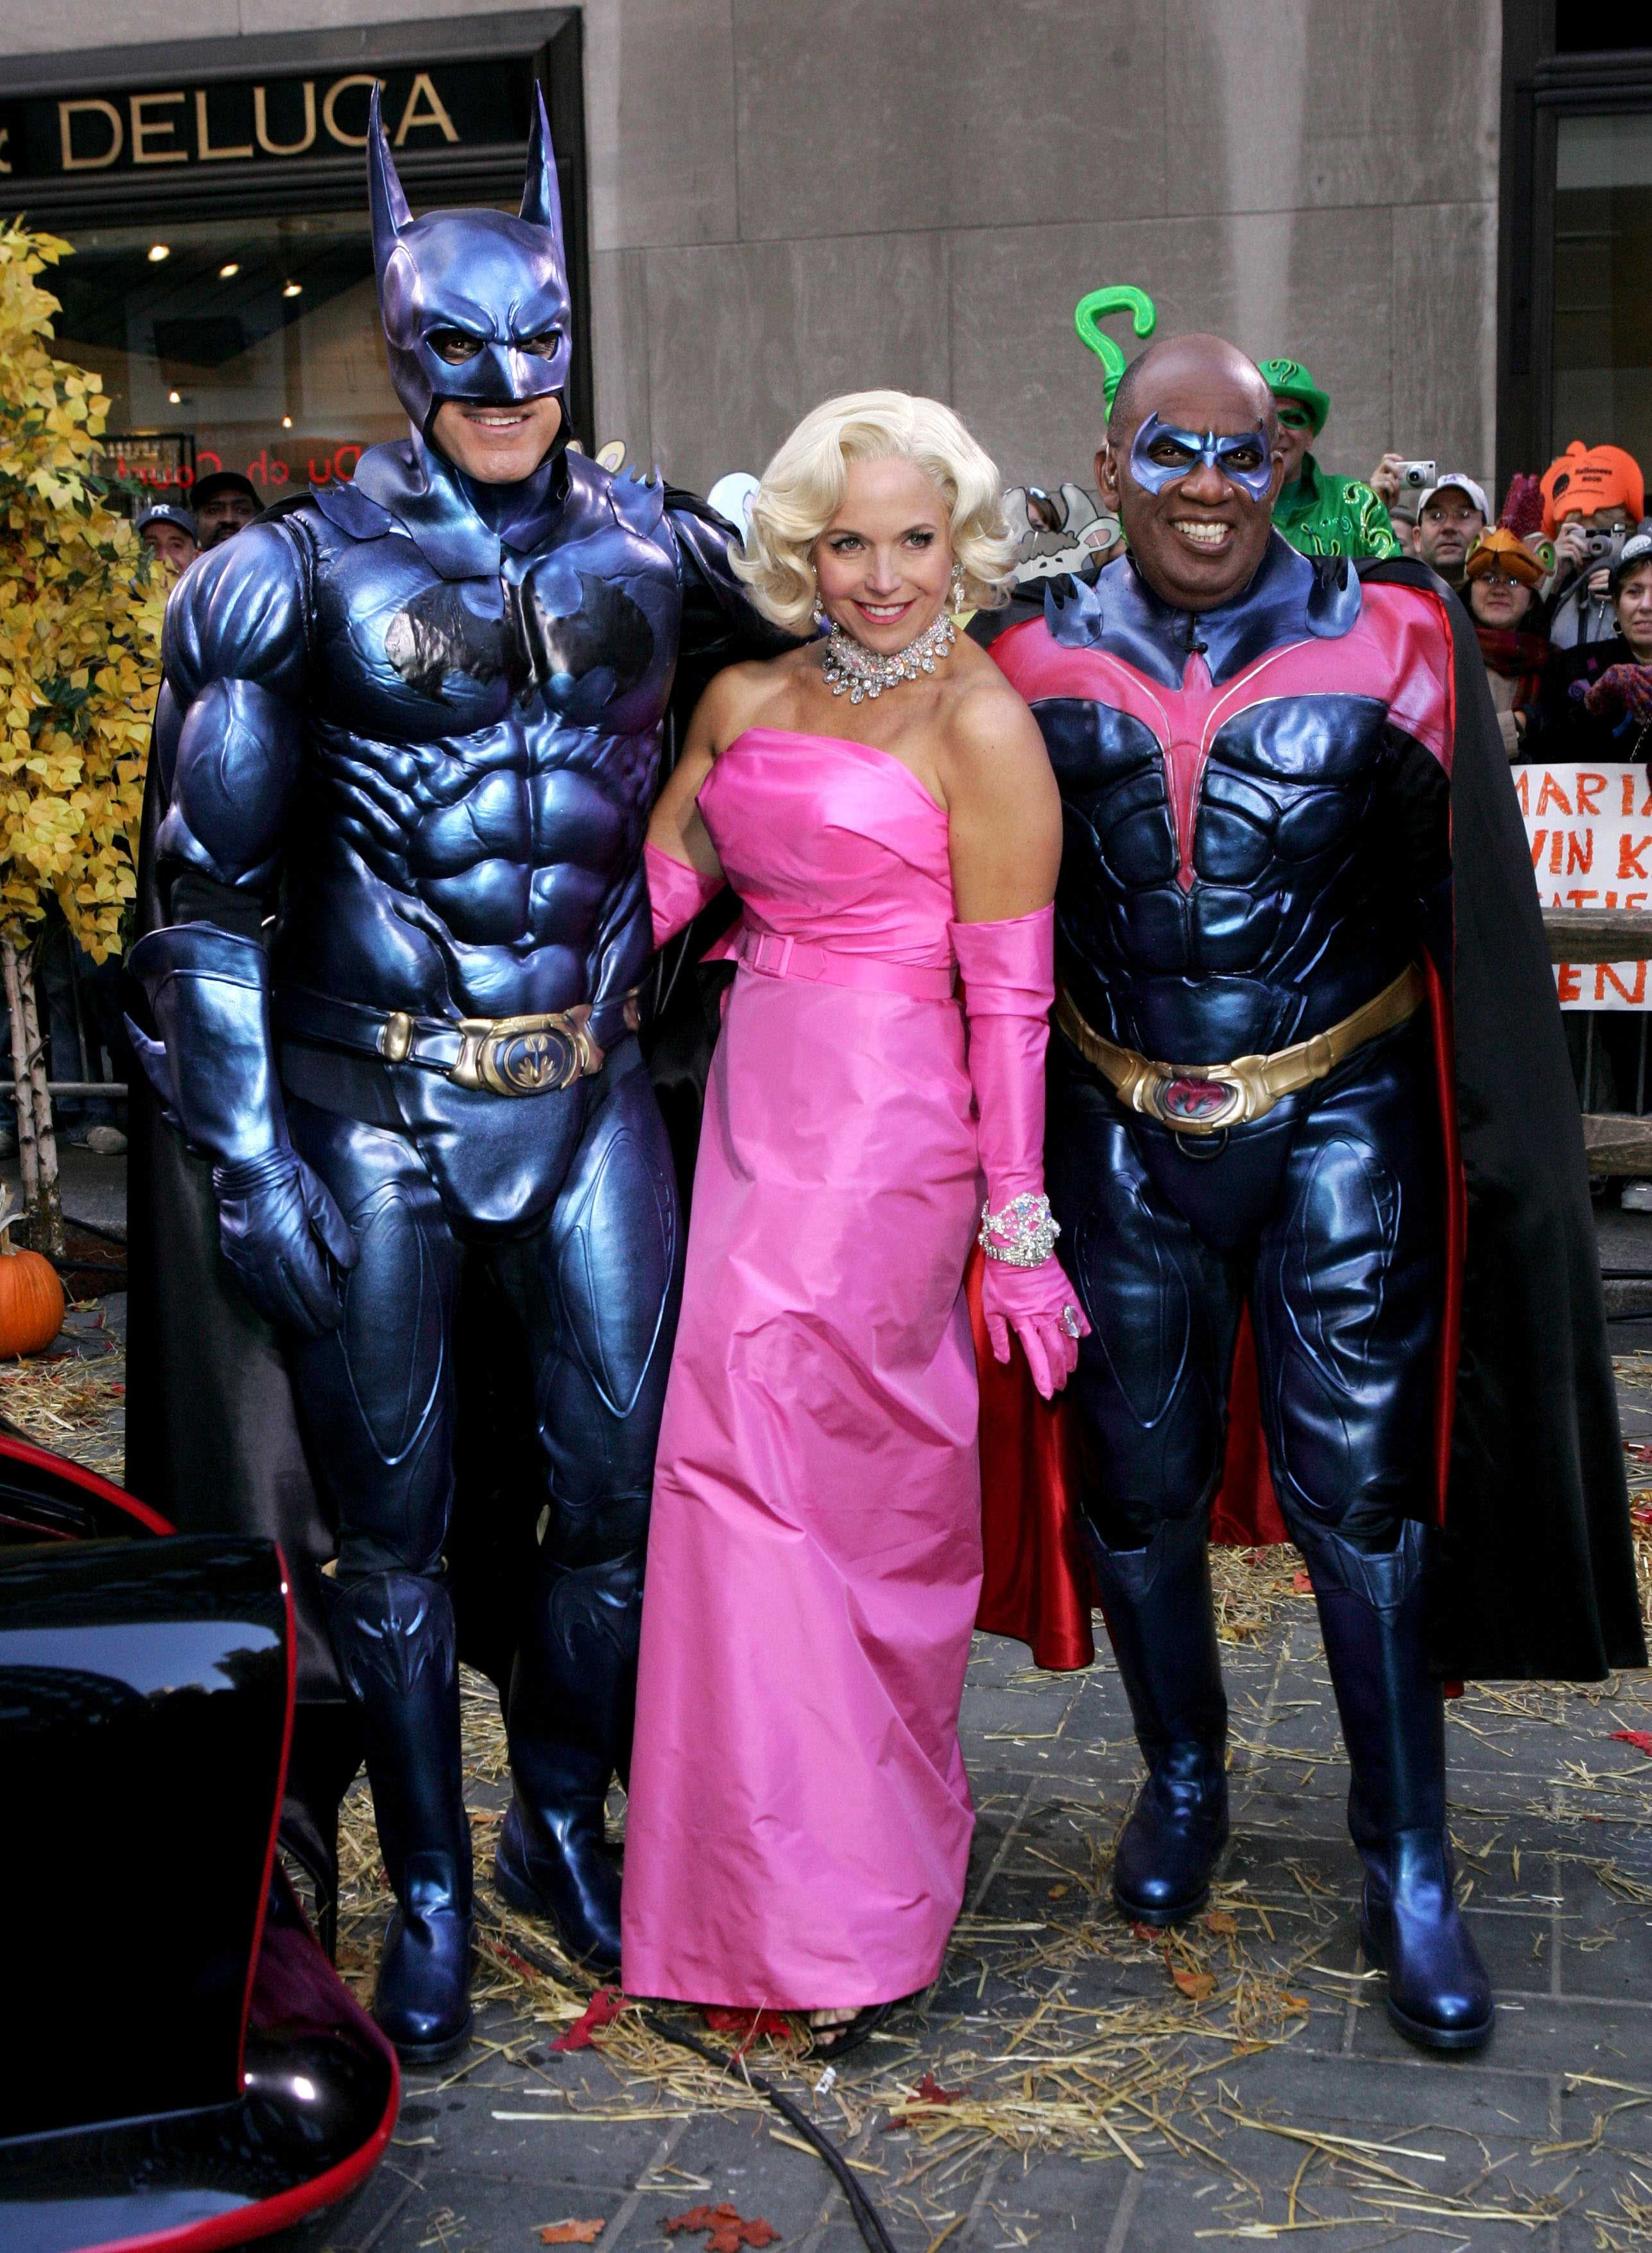 property brothers halloween costume. 10 best marilyn monroe costume ideas how to dress like for halloween property brothers